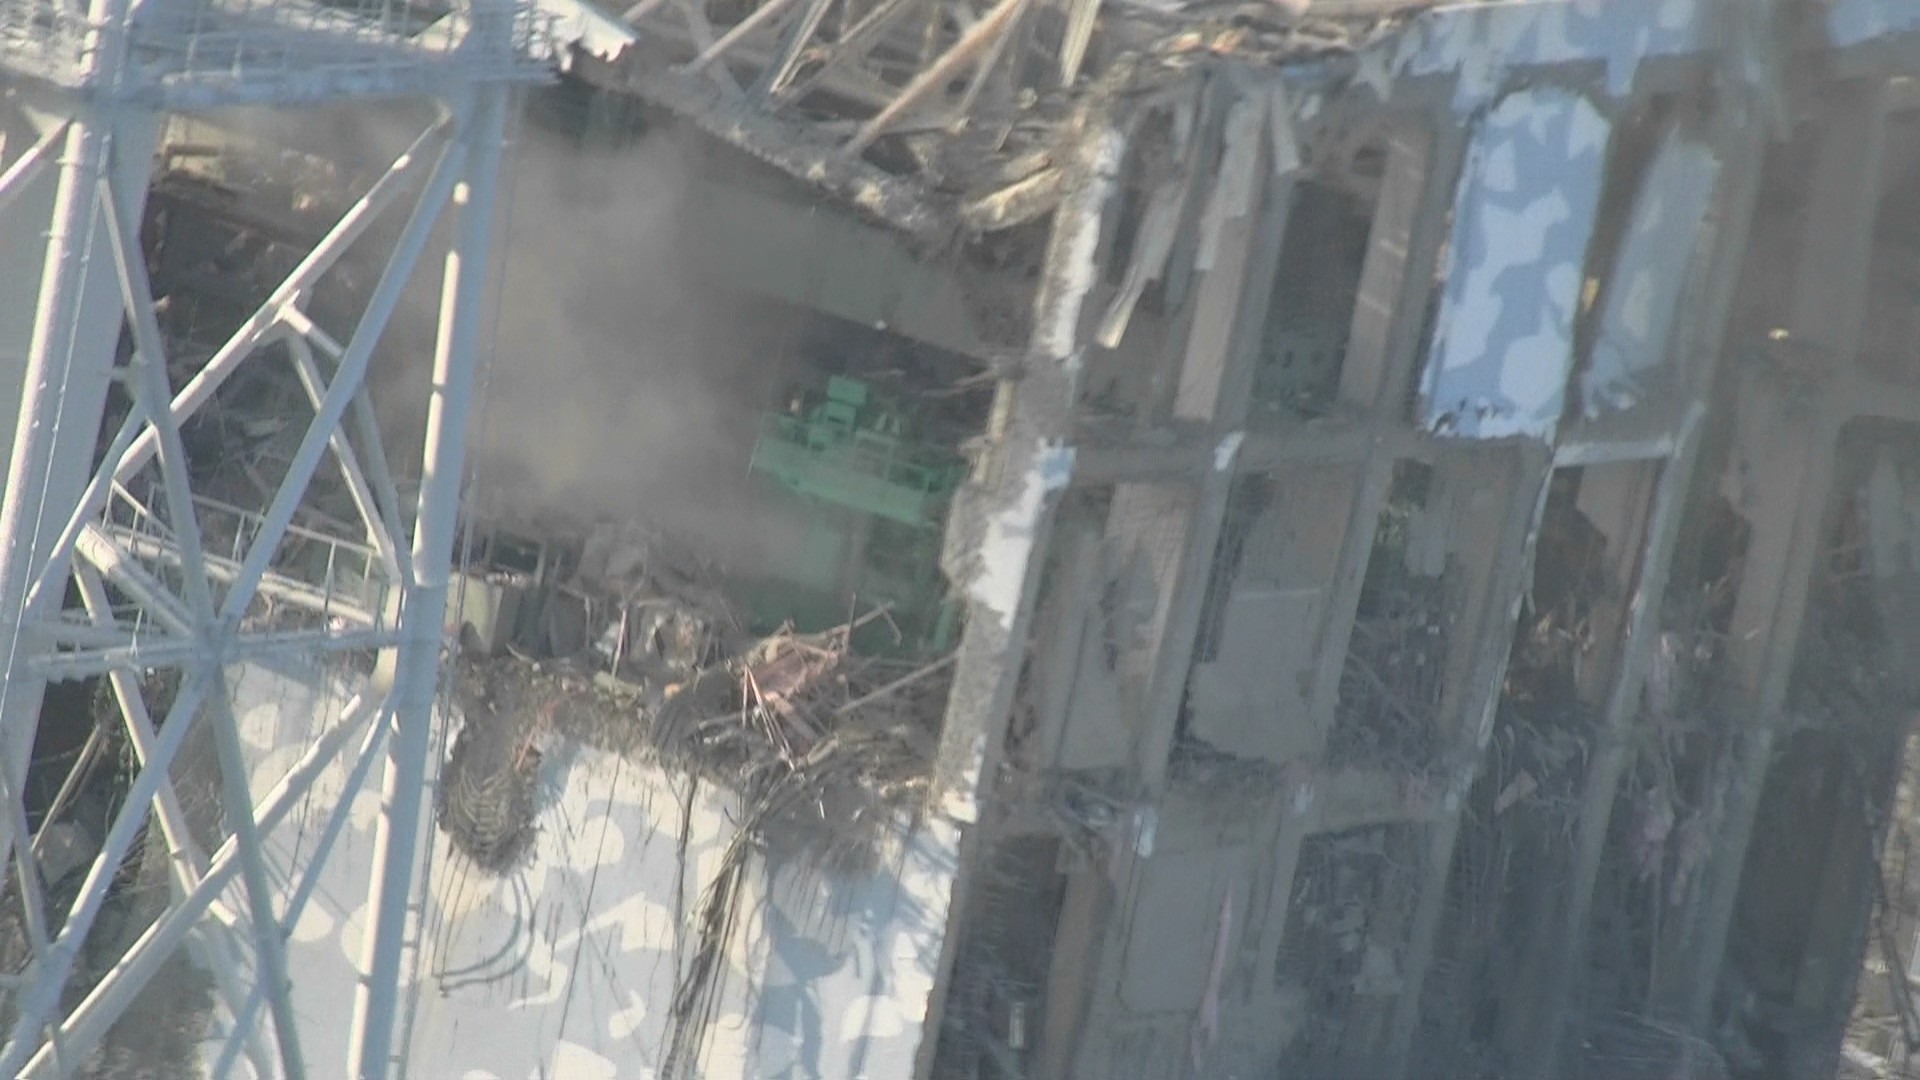 Unit 4 of Fukushima Daiichi Nuclear Power Station (pictured from a helicopter) : Photo2